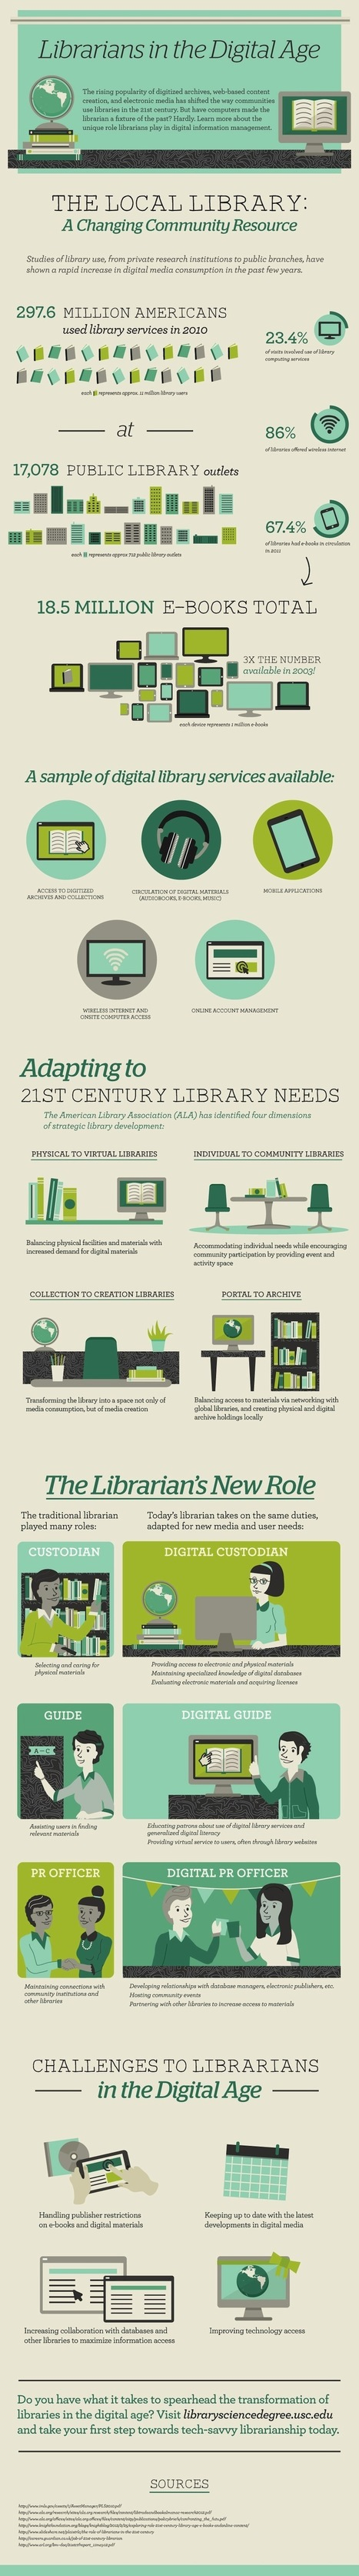 In digital age, librarians are needed more than ever [infographic] | TechLib | Scoop.it